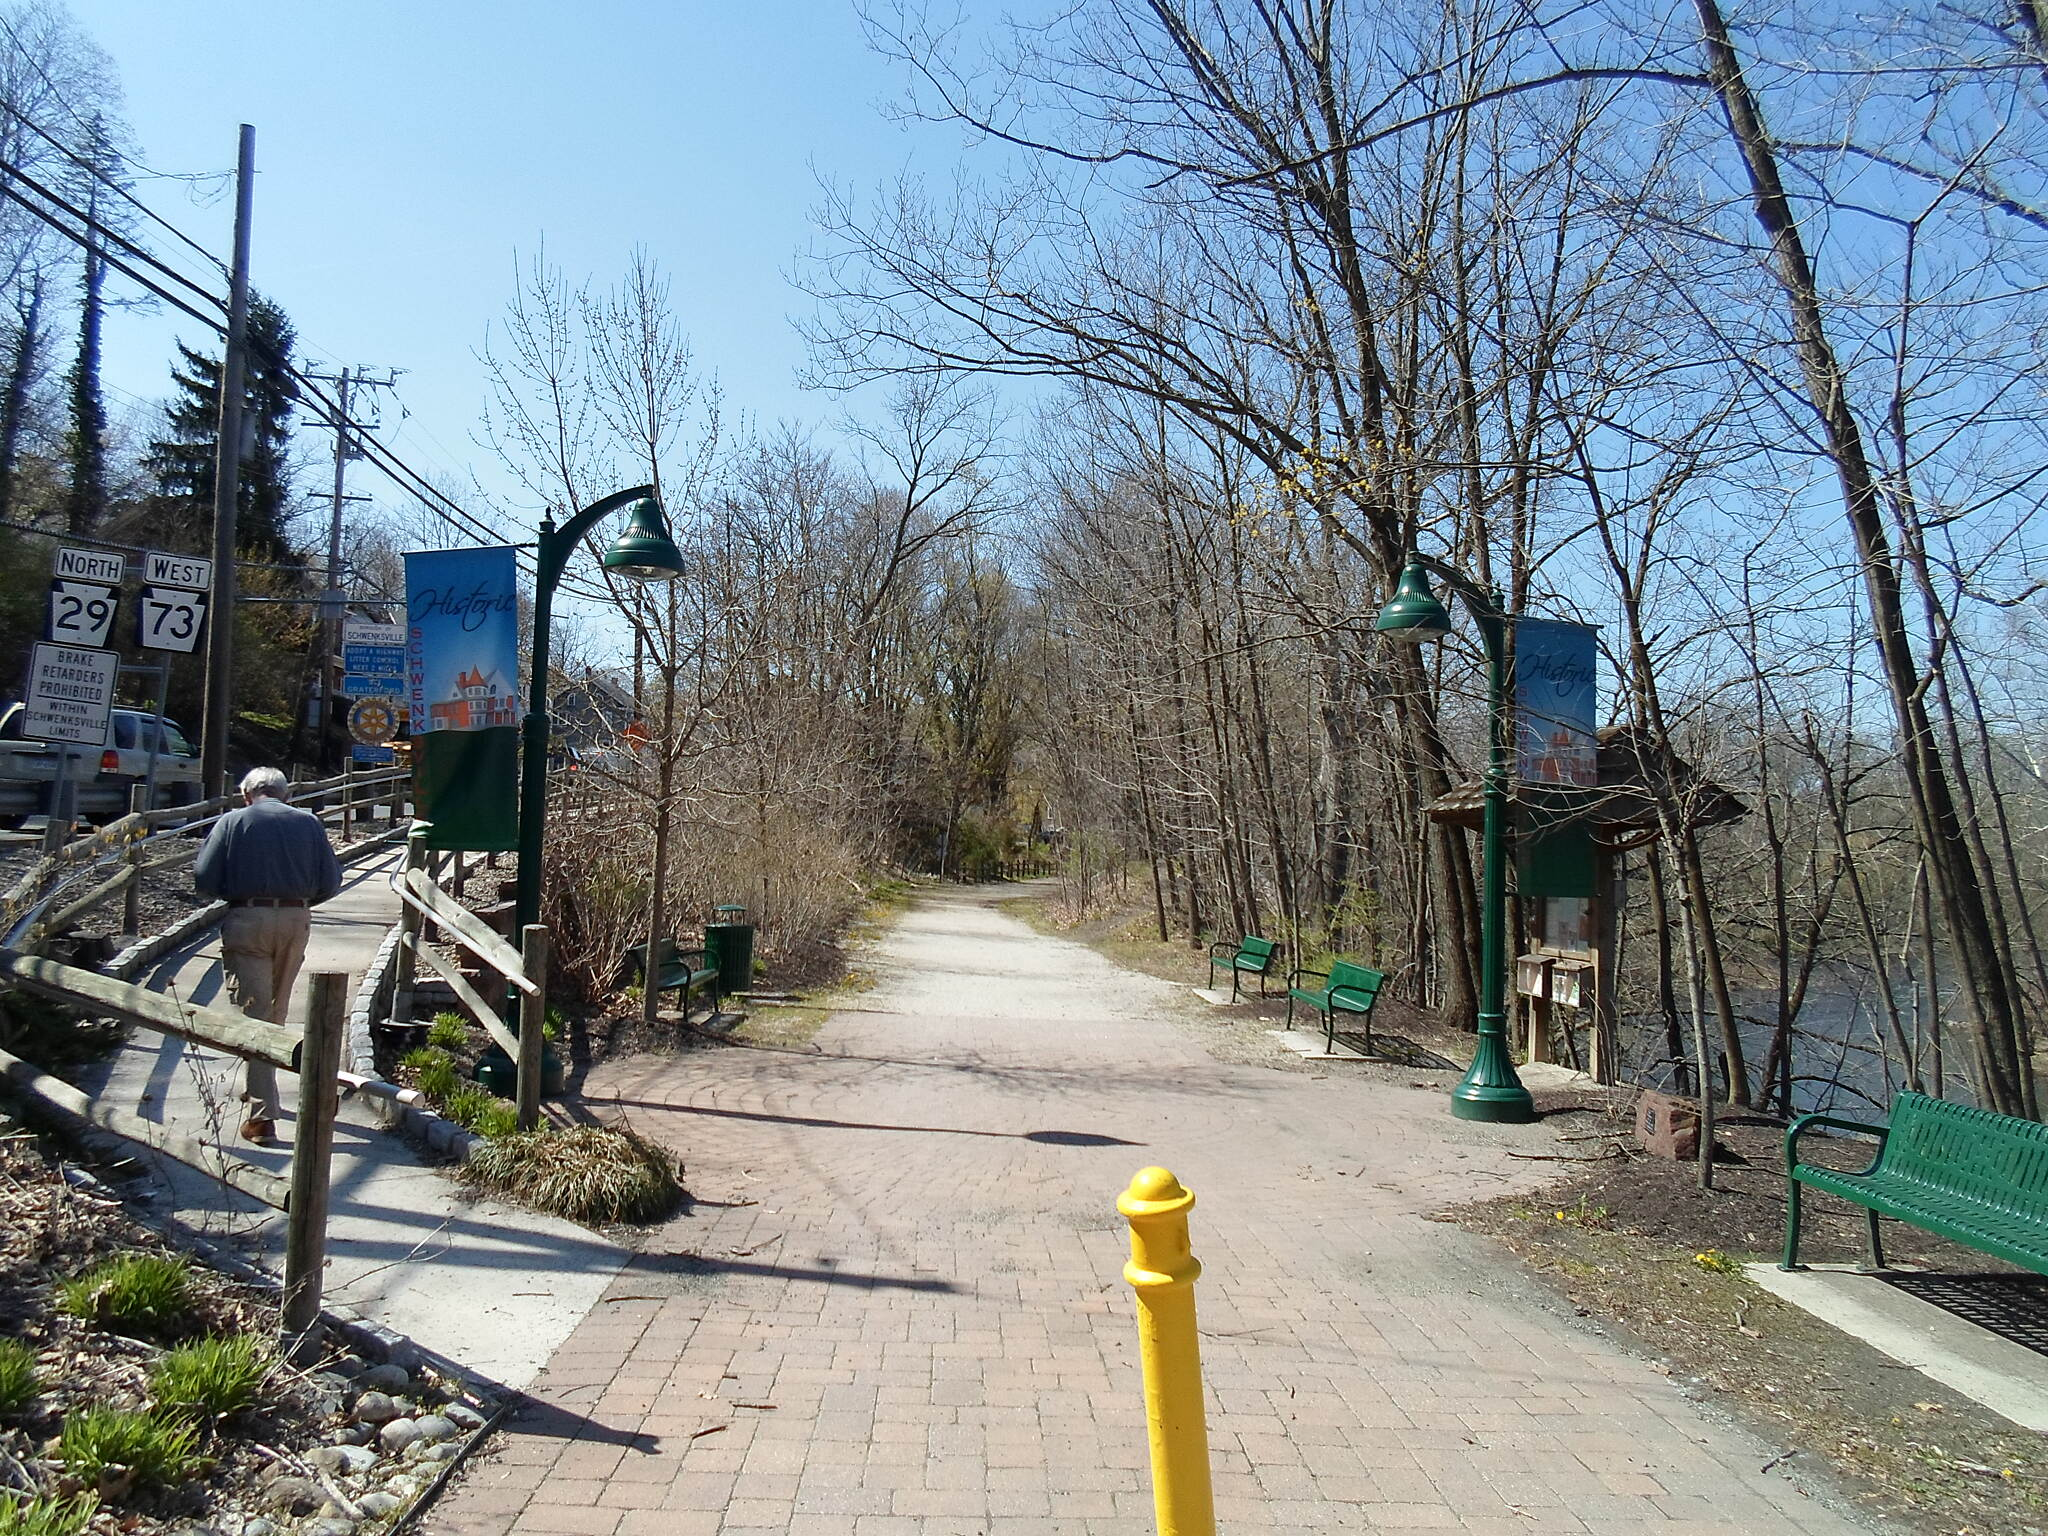 Perkiomen Trail Perkiomen Trail Looking north from the trail crossing at Route 73. The pocket park doubles as a junction between the trail and the sidewalk that follows Routes 29 and 73 into Schwenksville, which veers up the ramp to the left. Taken Apr. 2016.